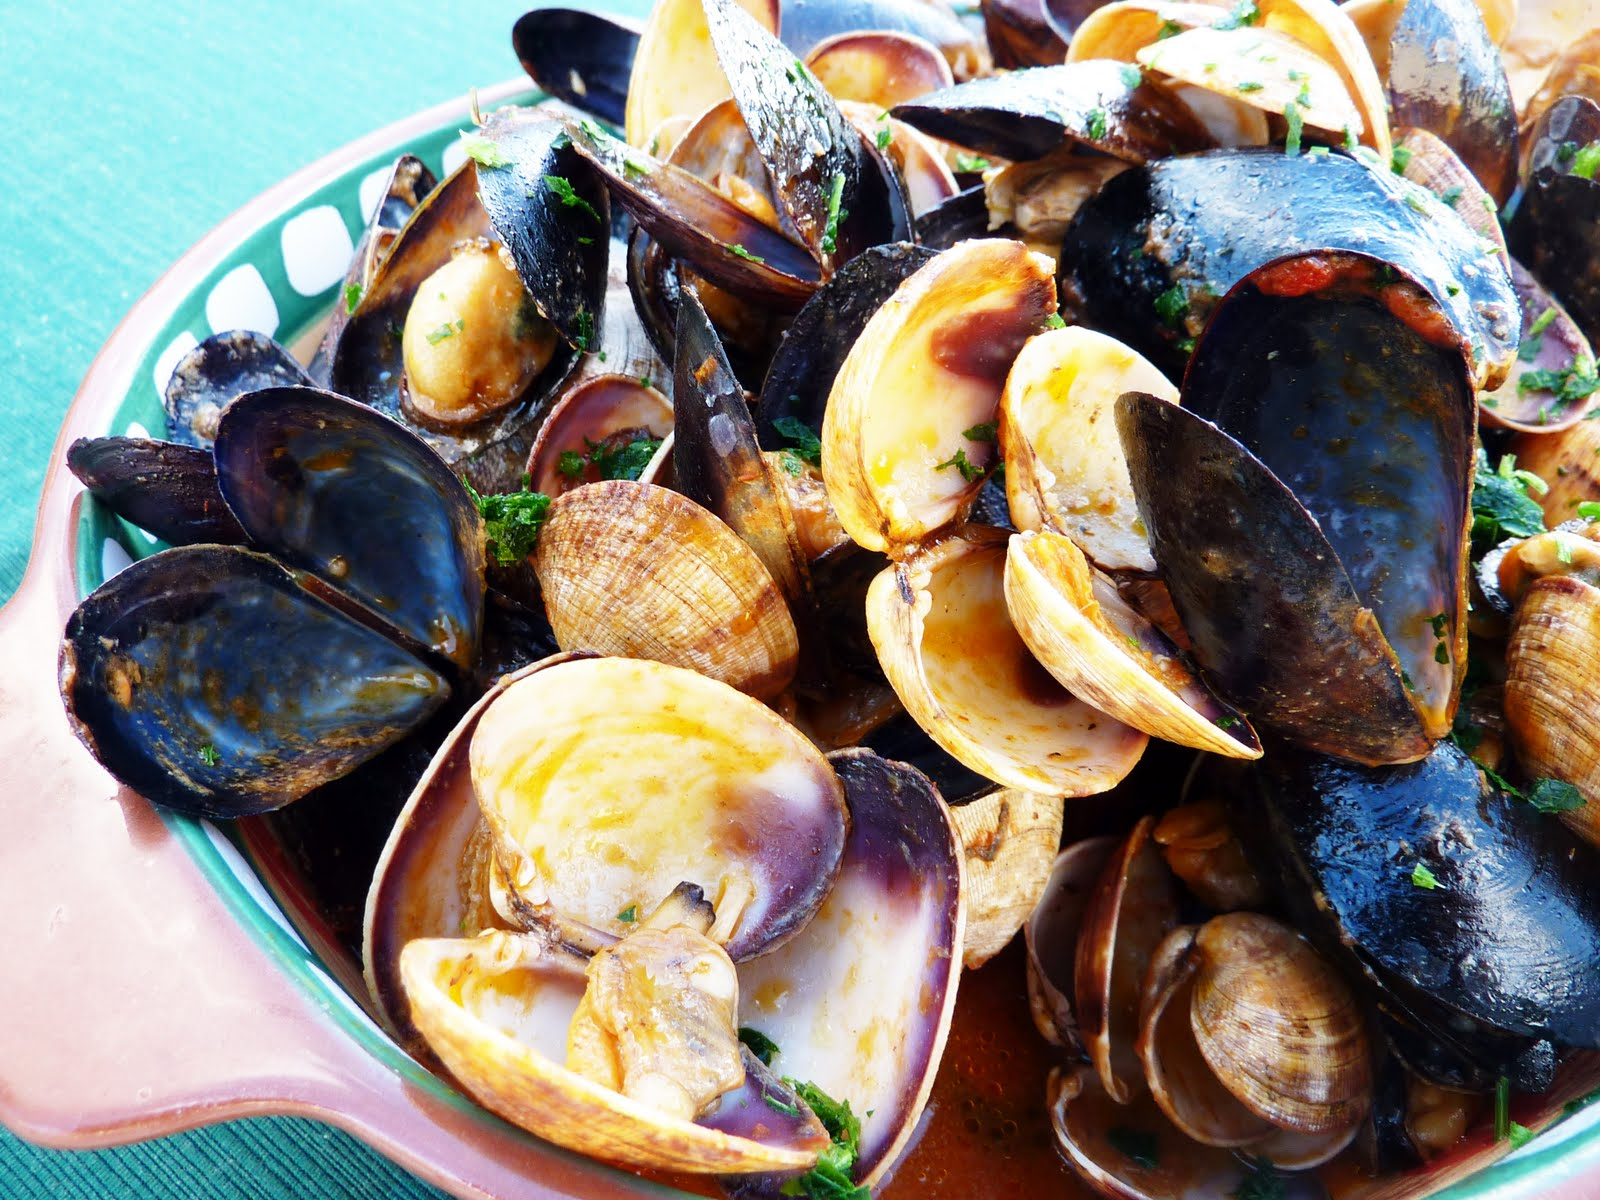 Mangiandobene: Clams and mussels in tomato broth